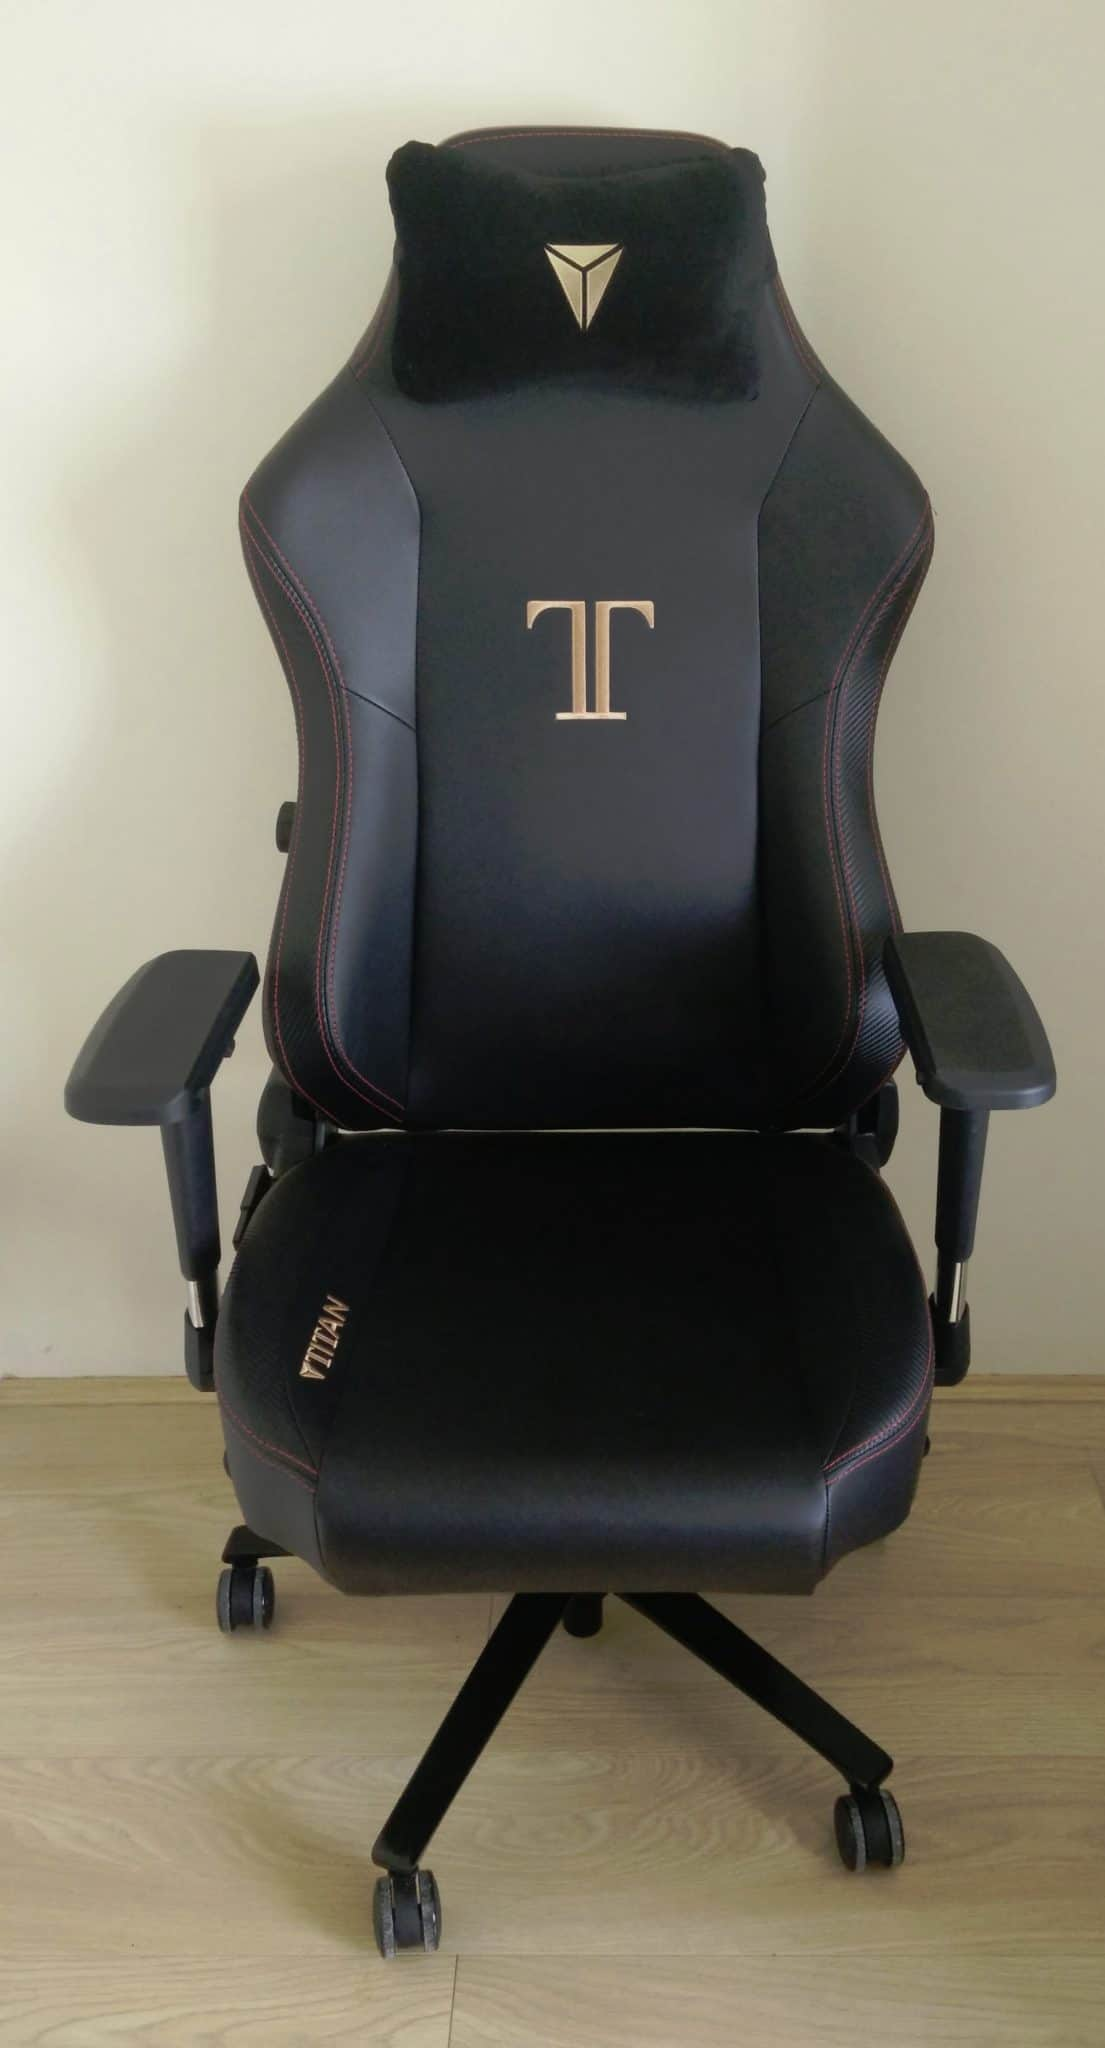 Secretlab Titan Gaming Chair Review The Streaming Blog